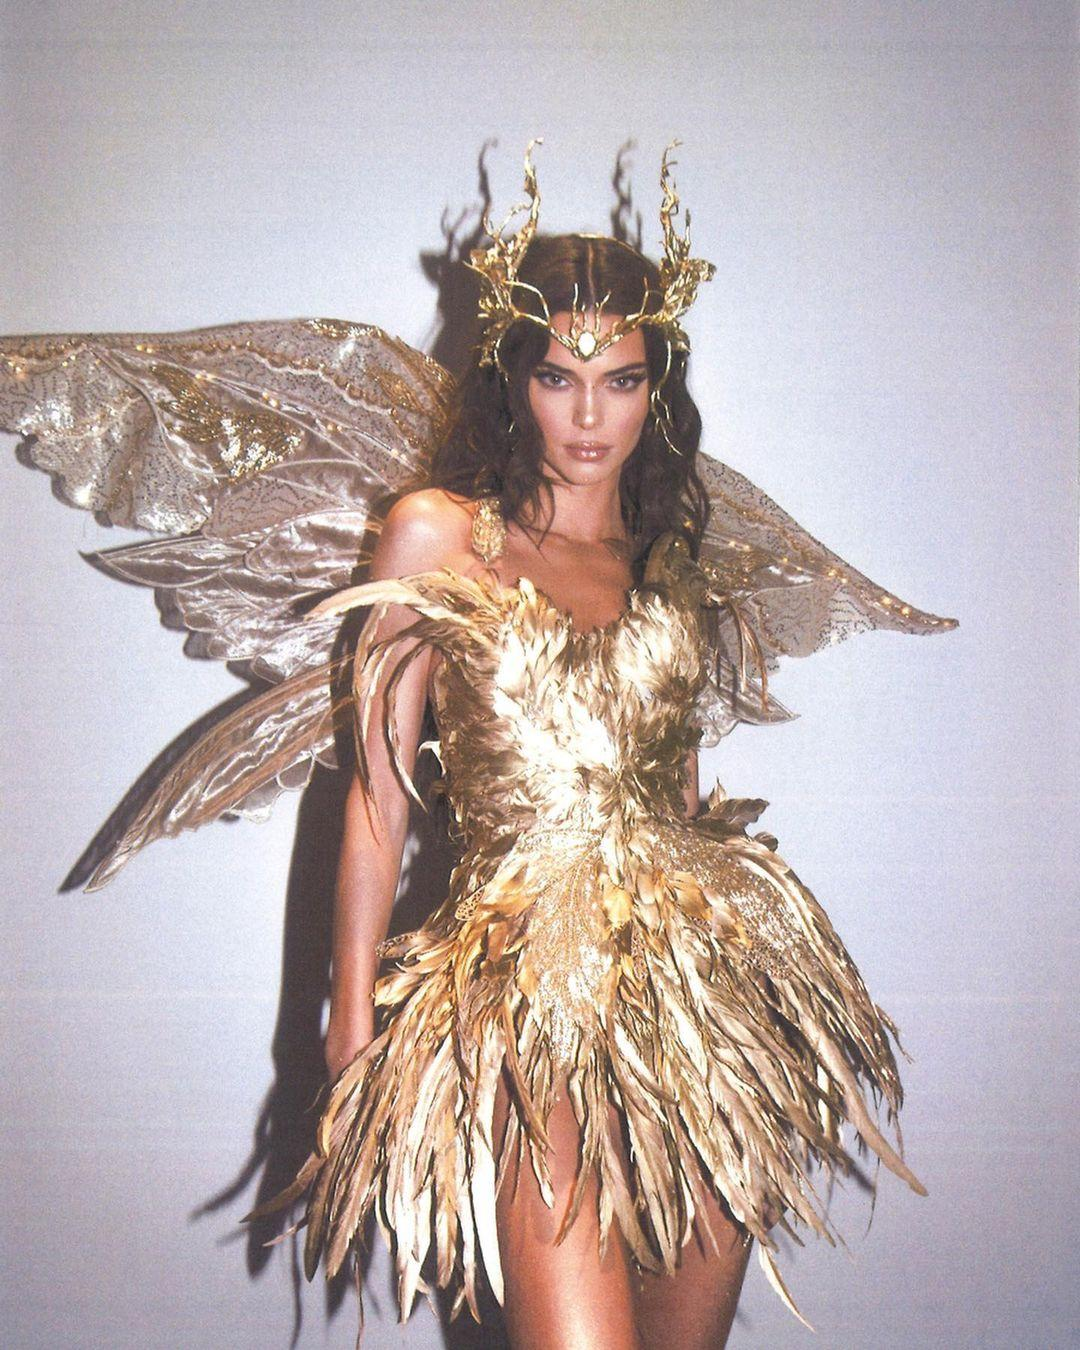 Kendall as a Forest Fairy